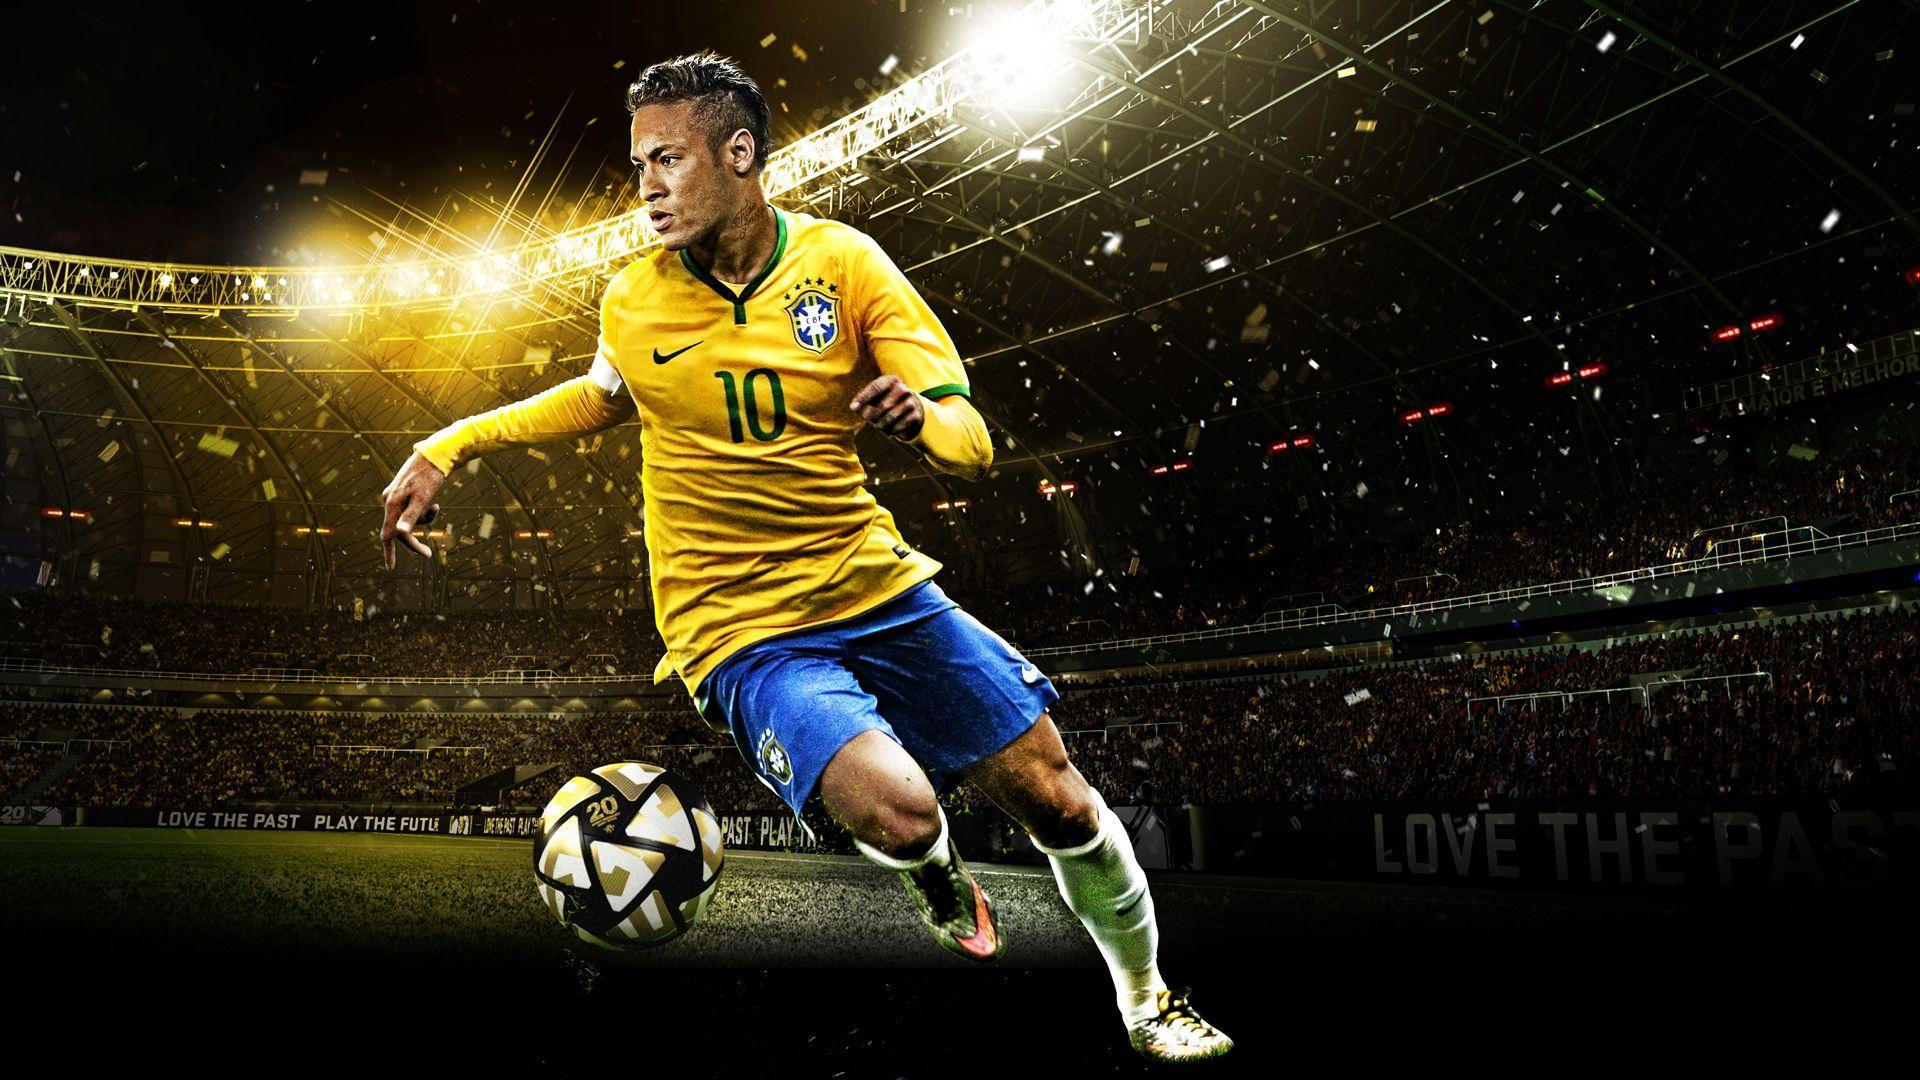 Pro Evolution Soccer Wallpapers Top Free Pro Evolution Soccer Backgrounds Wallpaperaccess